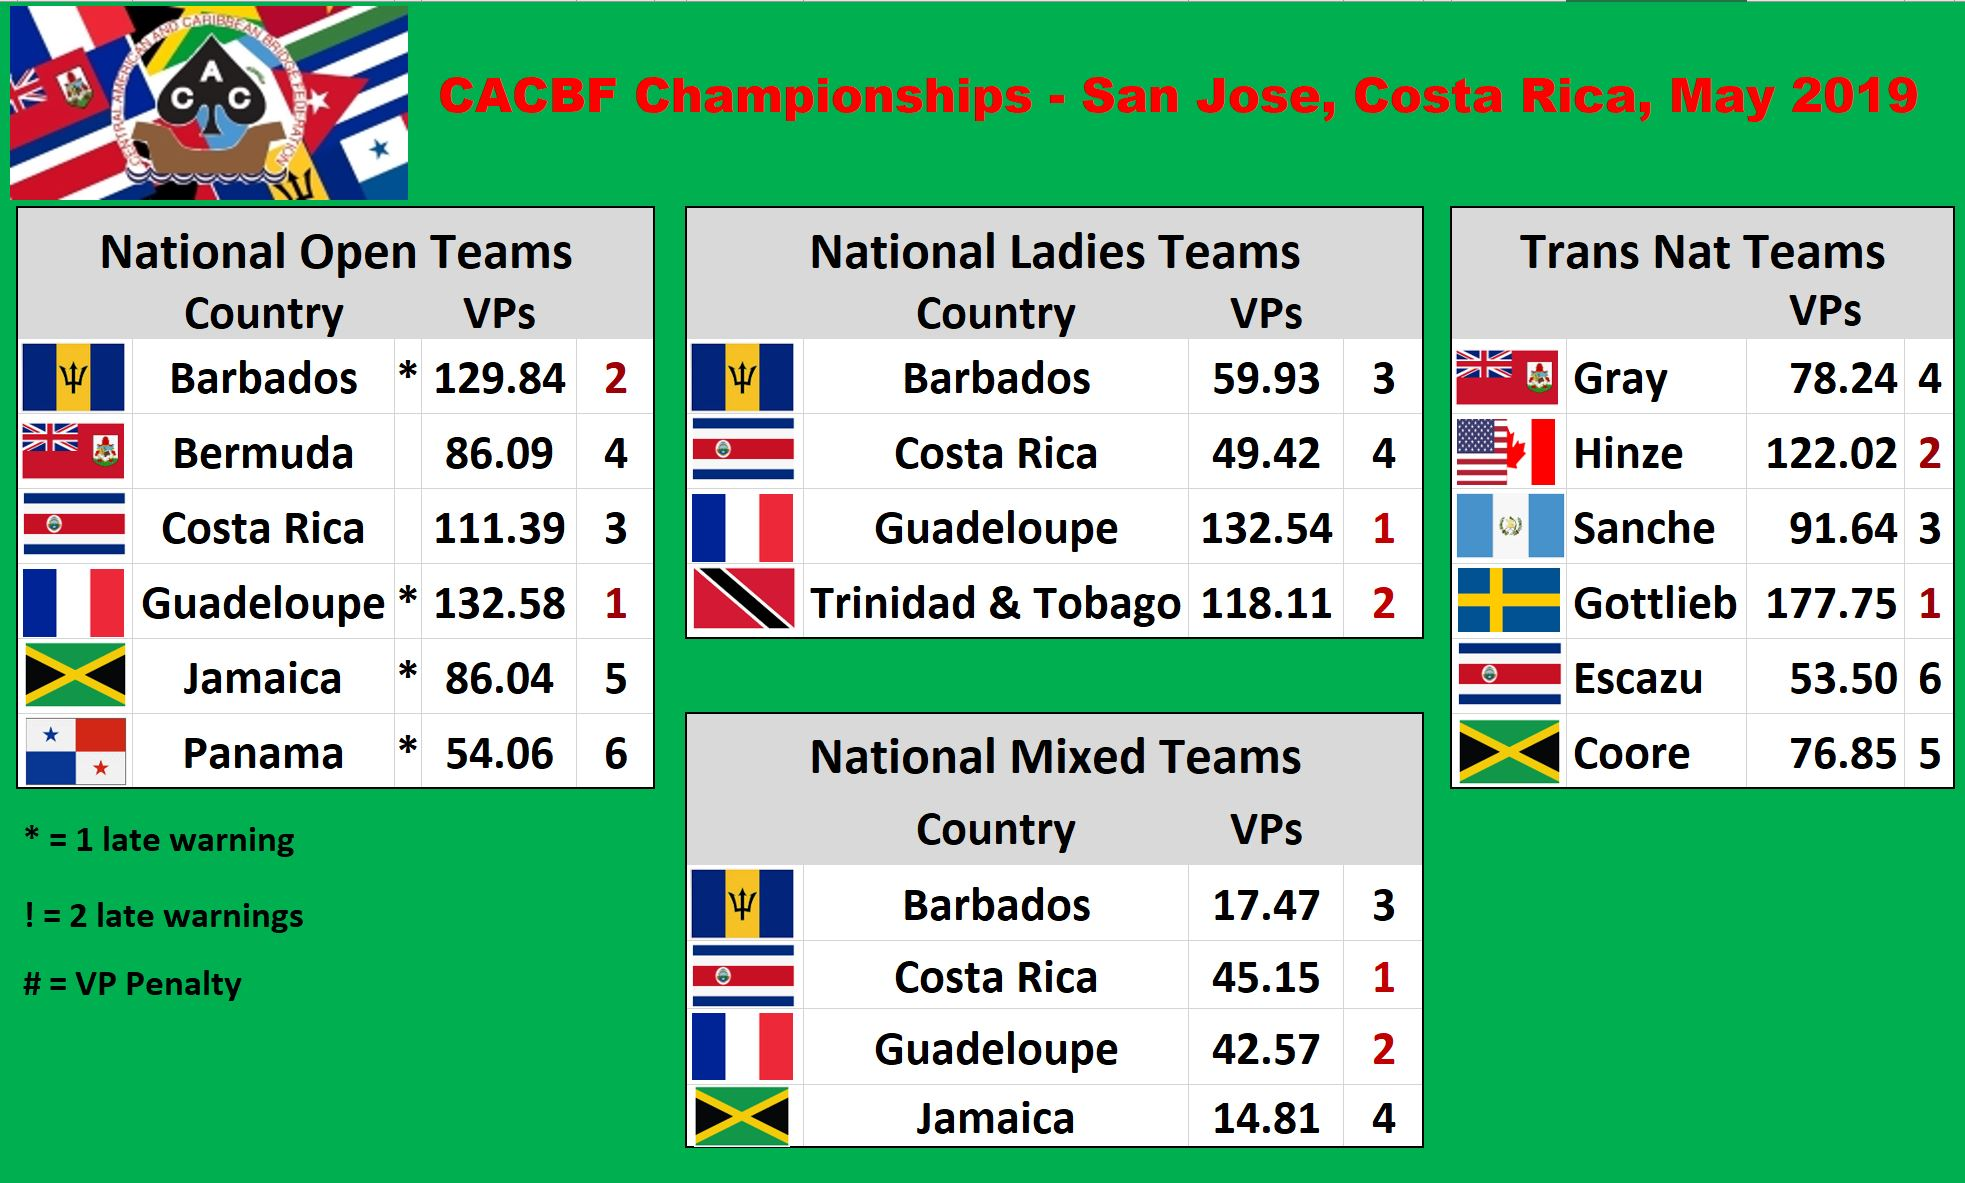 30th CACBF Championship Teams - Round Robin Results